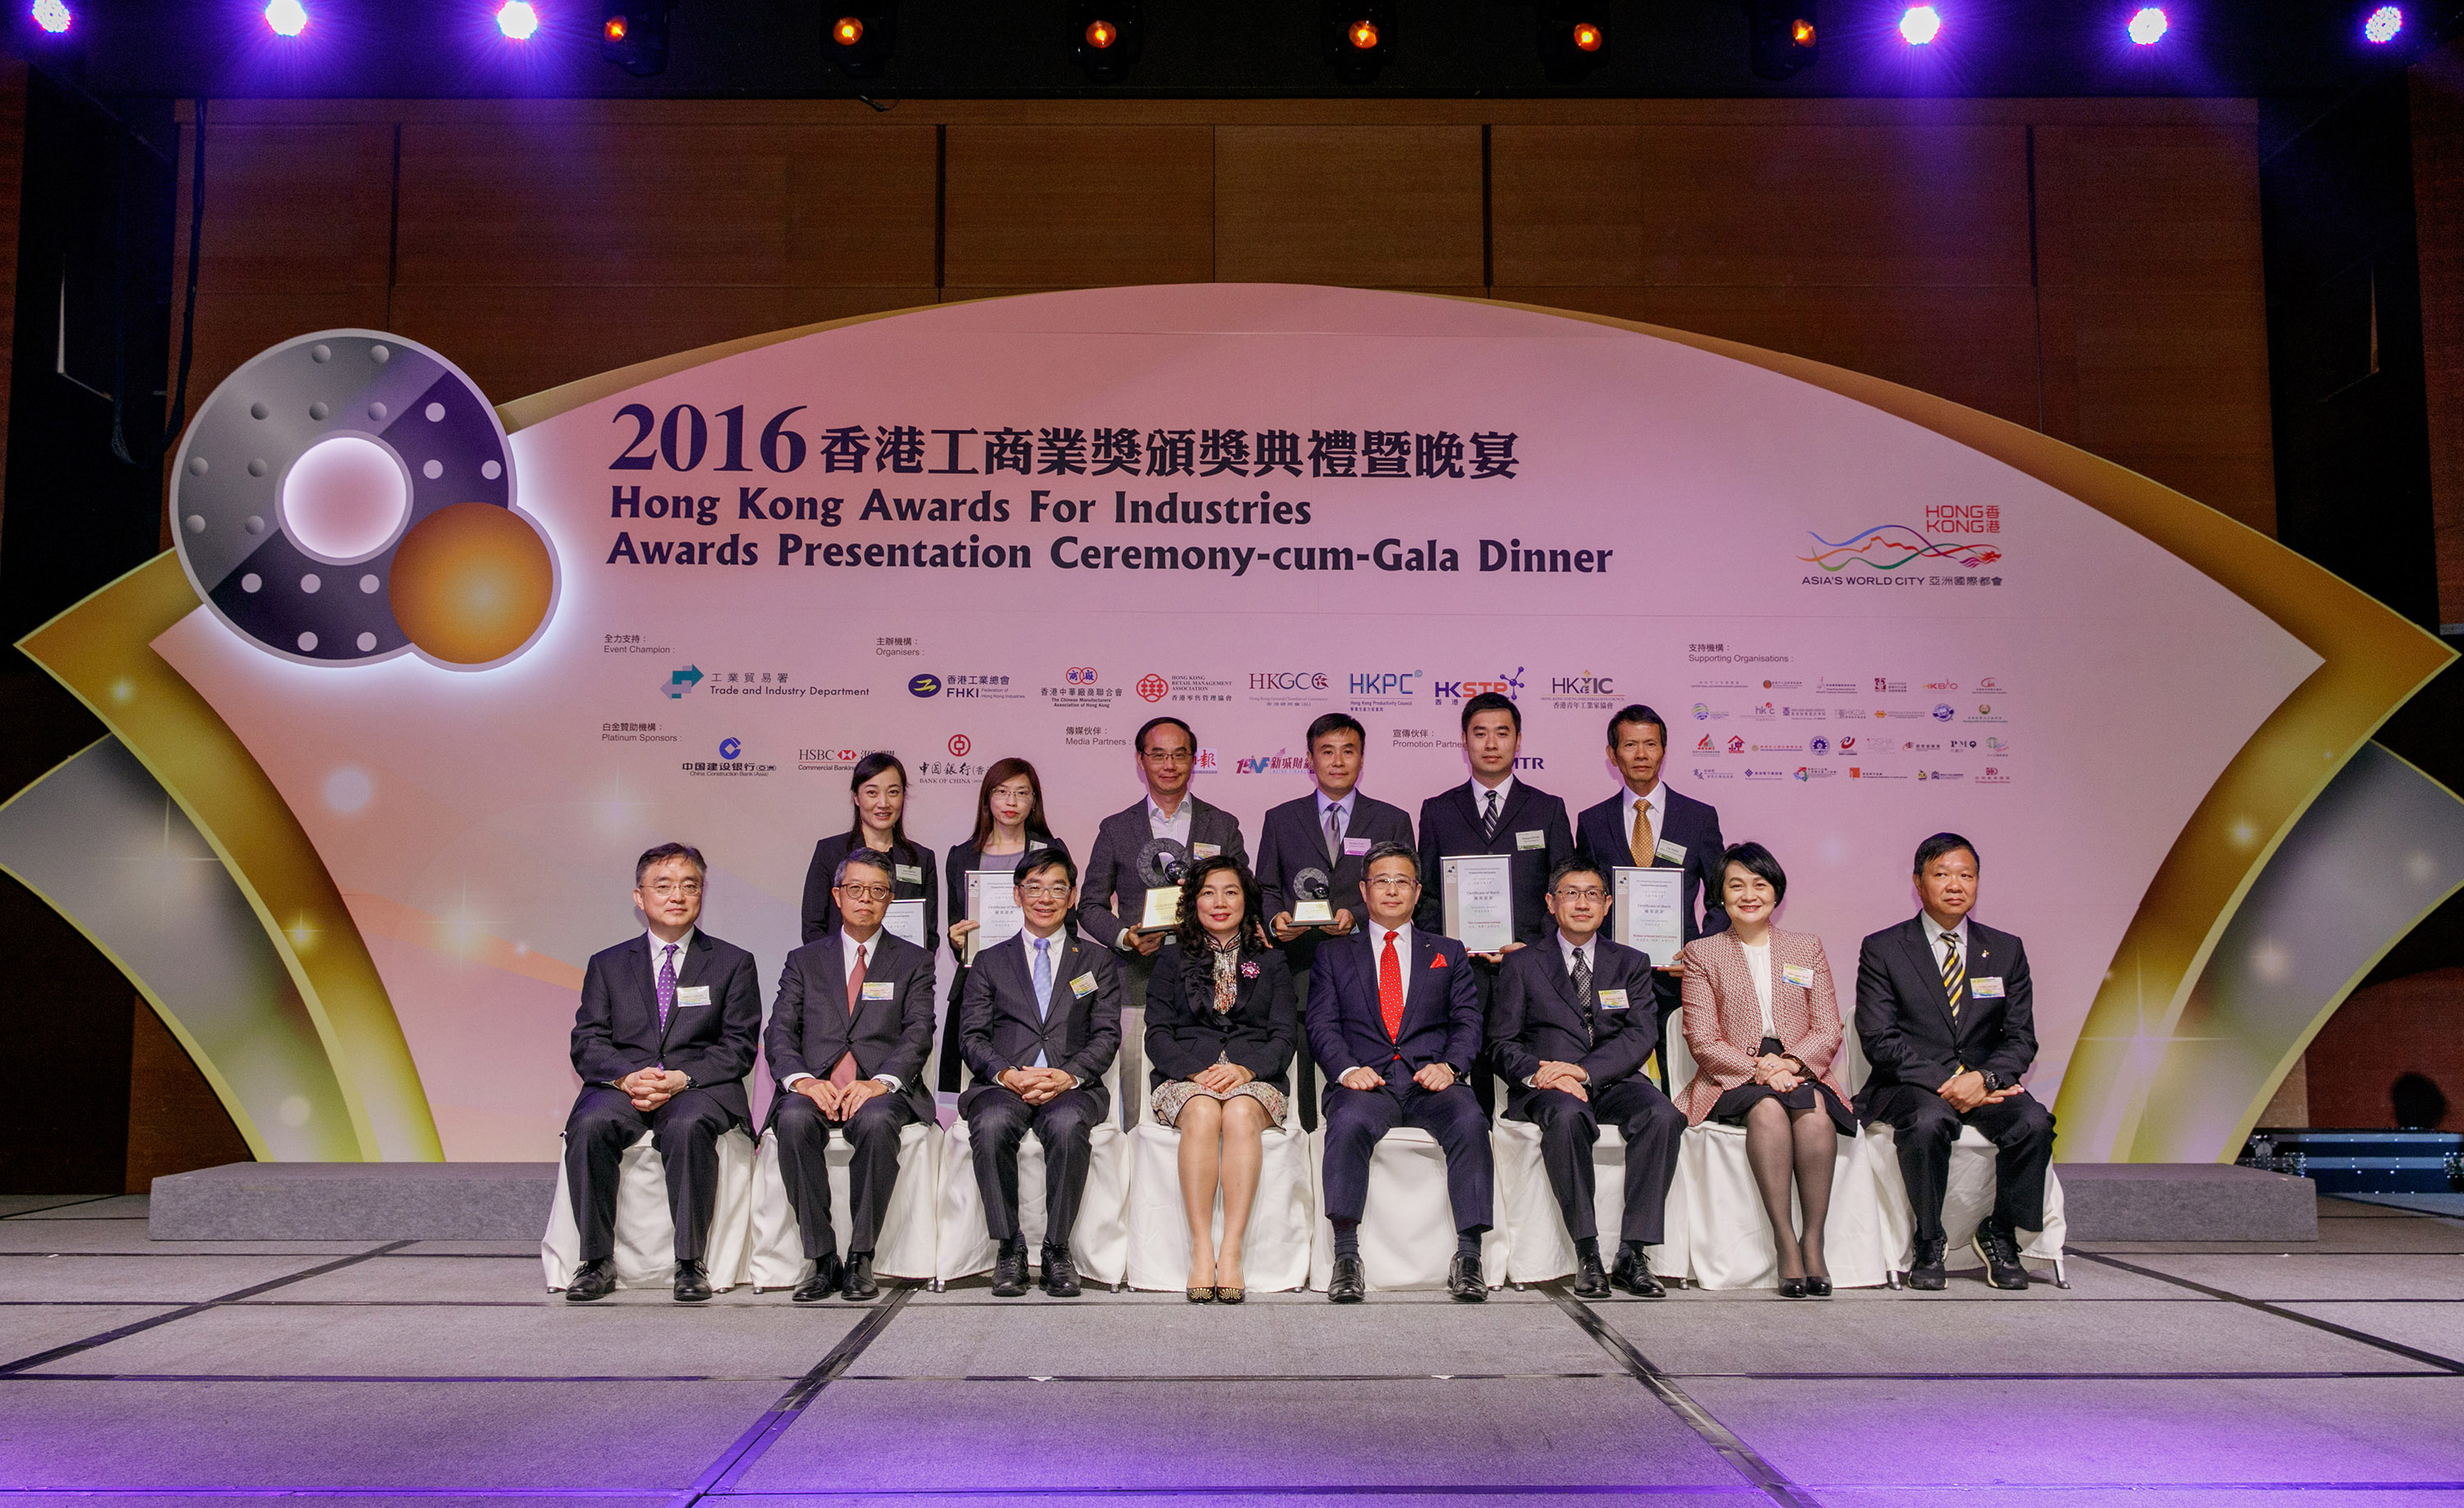 Hong Kong Awards for Industries